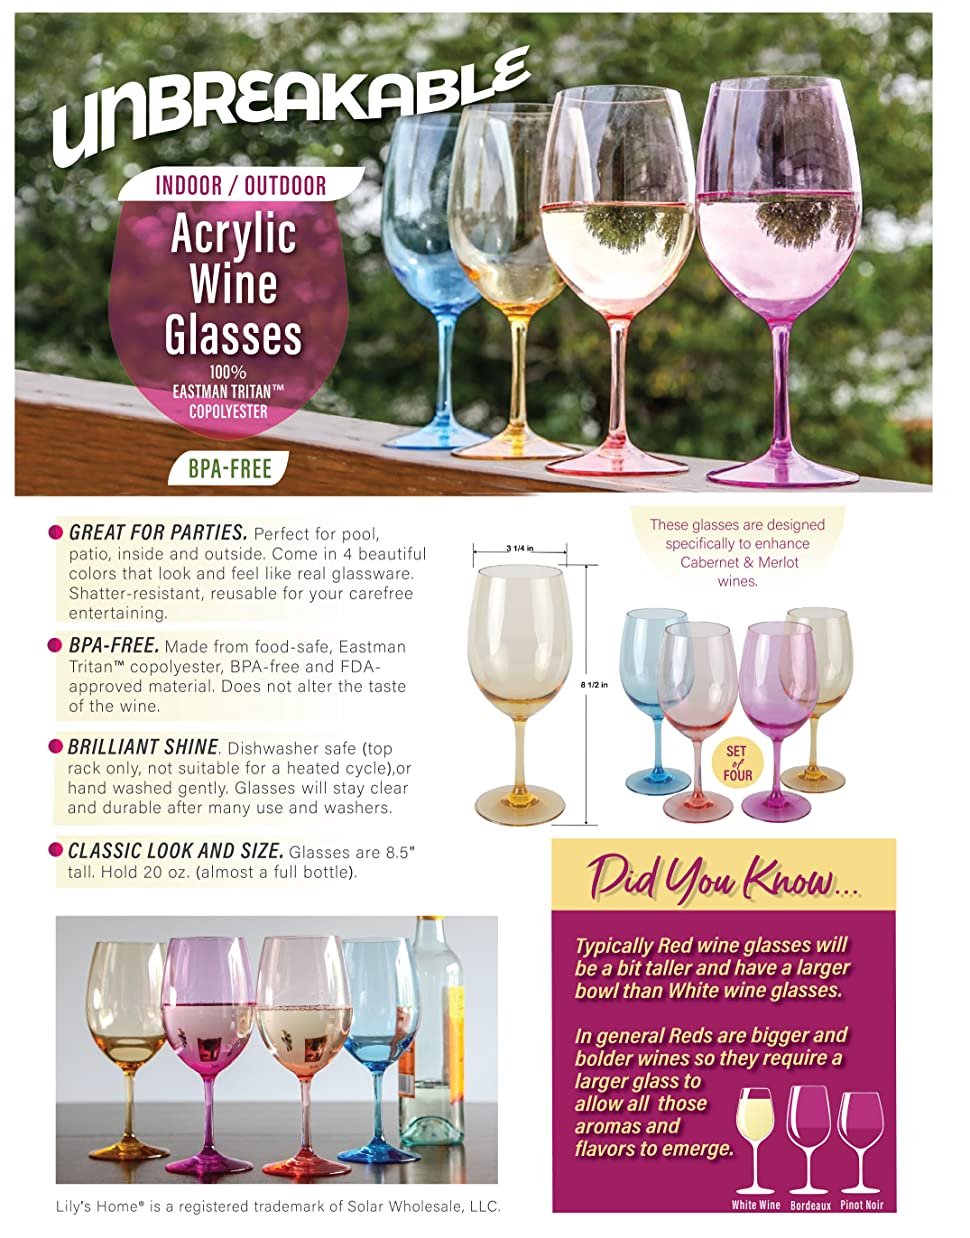 Lilyu0027s Home Unbreakable Indoor / Outdoor Acrylic Wine Glasses, 100% Tritan  Plastic Shatterproof And Reusable. BPA Free. Mixed Color. Set Of 4